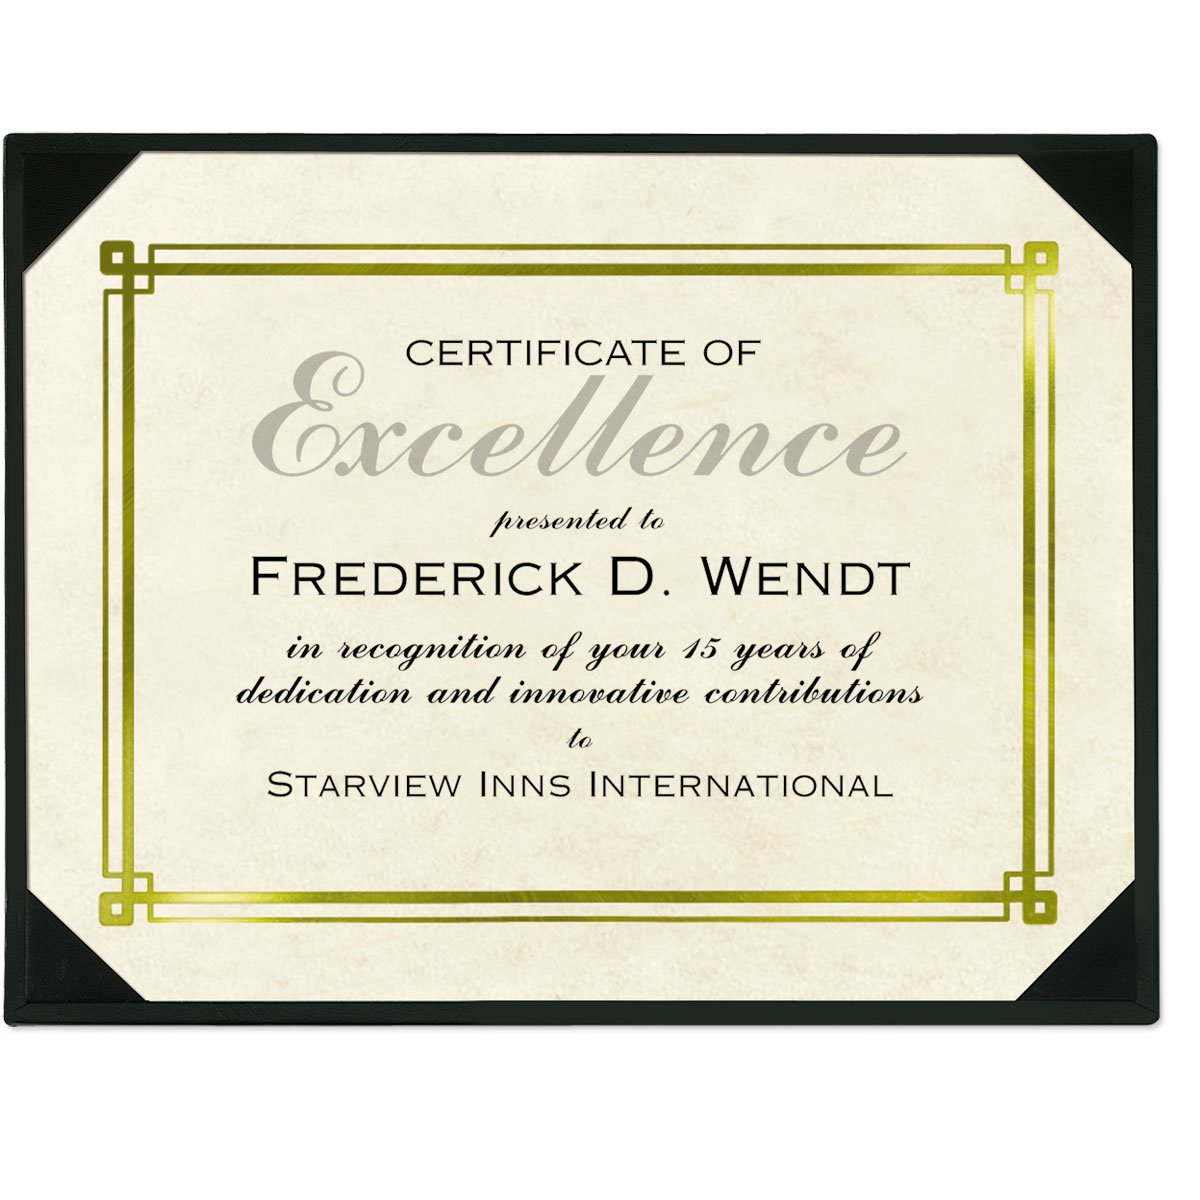 Black Leatherette Award Board, 10.75 x 13 inches, holds 8.5 x 11 inch certificate, gold accents, 3 count